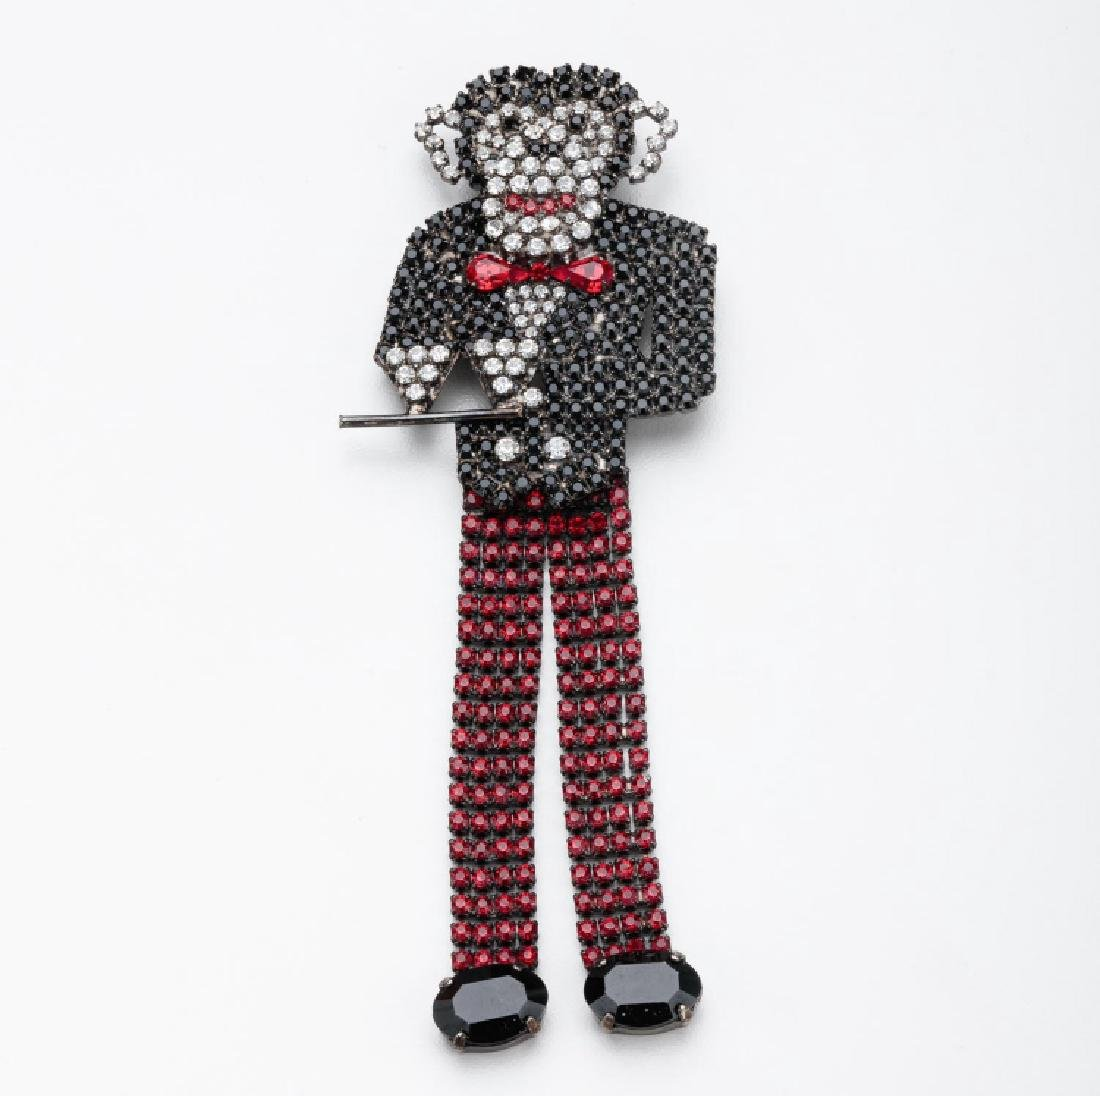 BUTLER & WILSON COCKTAIL WAITER MONKEY BROOCH